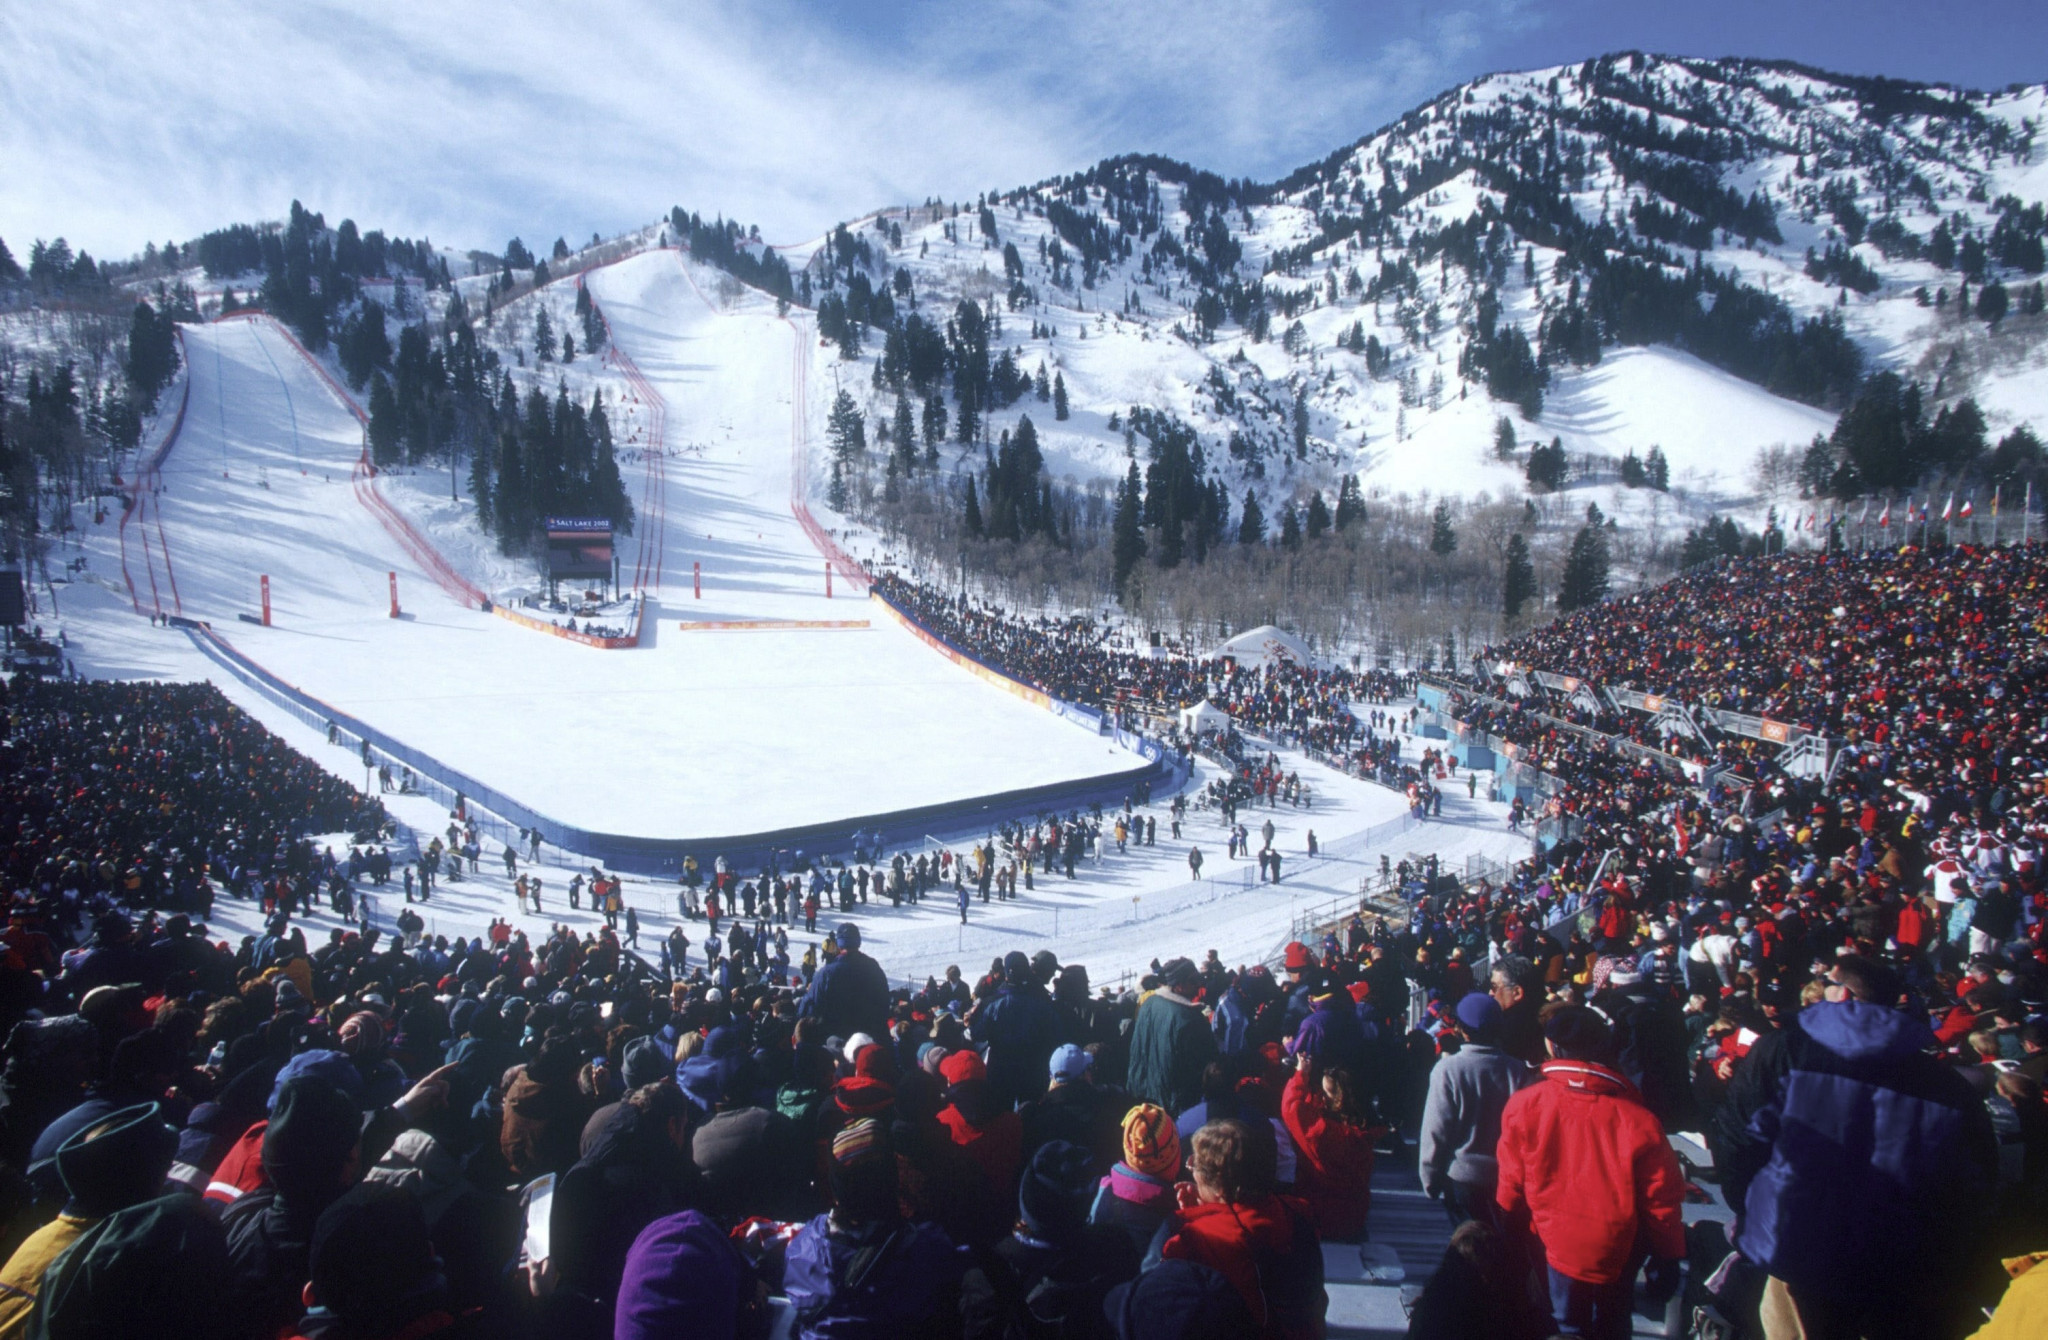 Salt Lake City has been selected as the US candidate for a potential 2030 Winter Olympic bid ©Getty Images